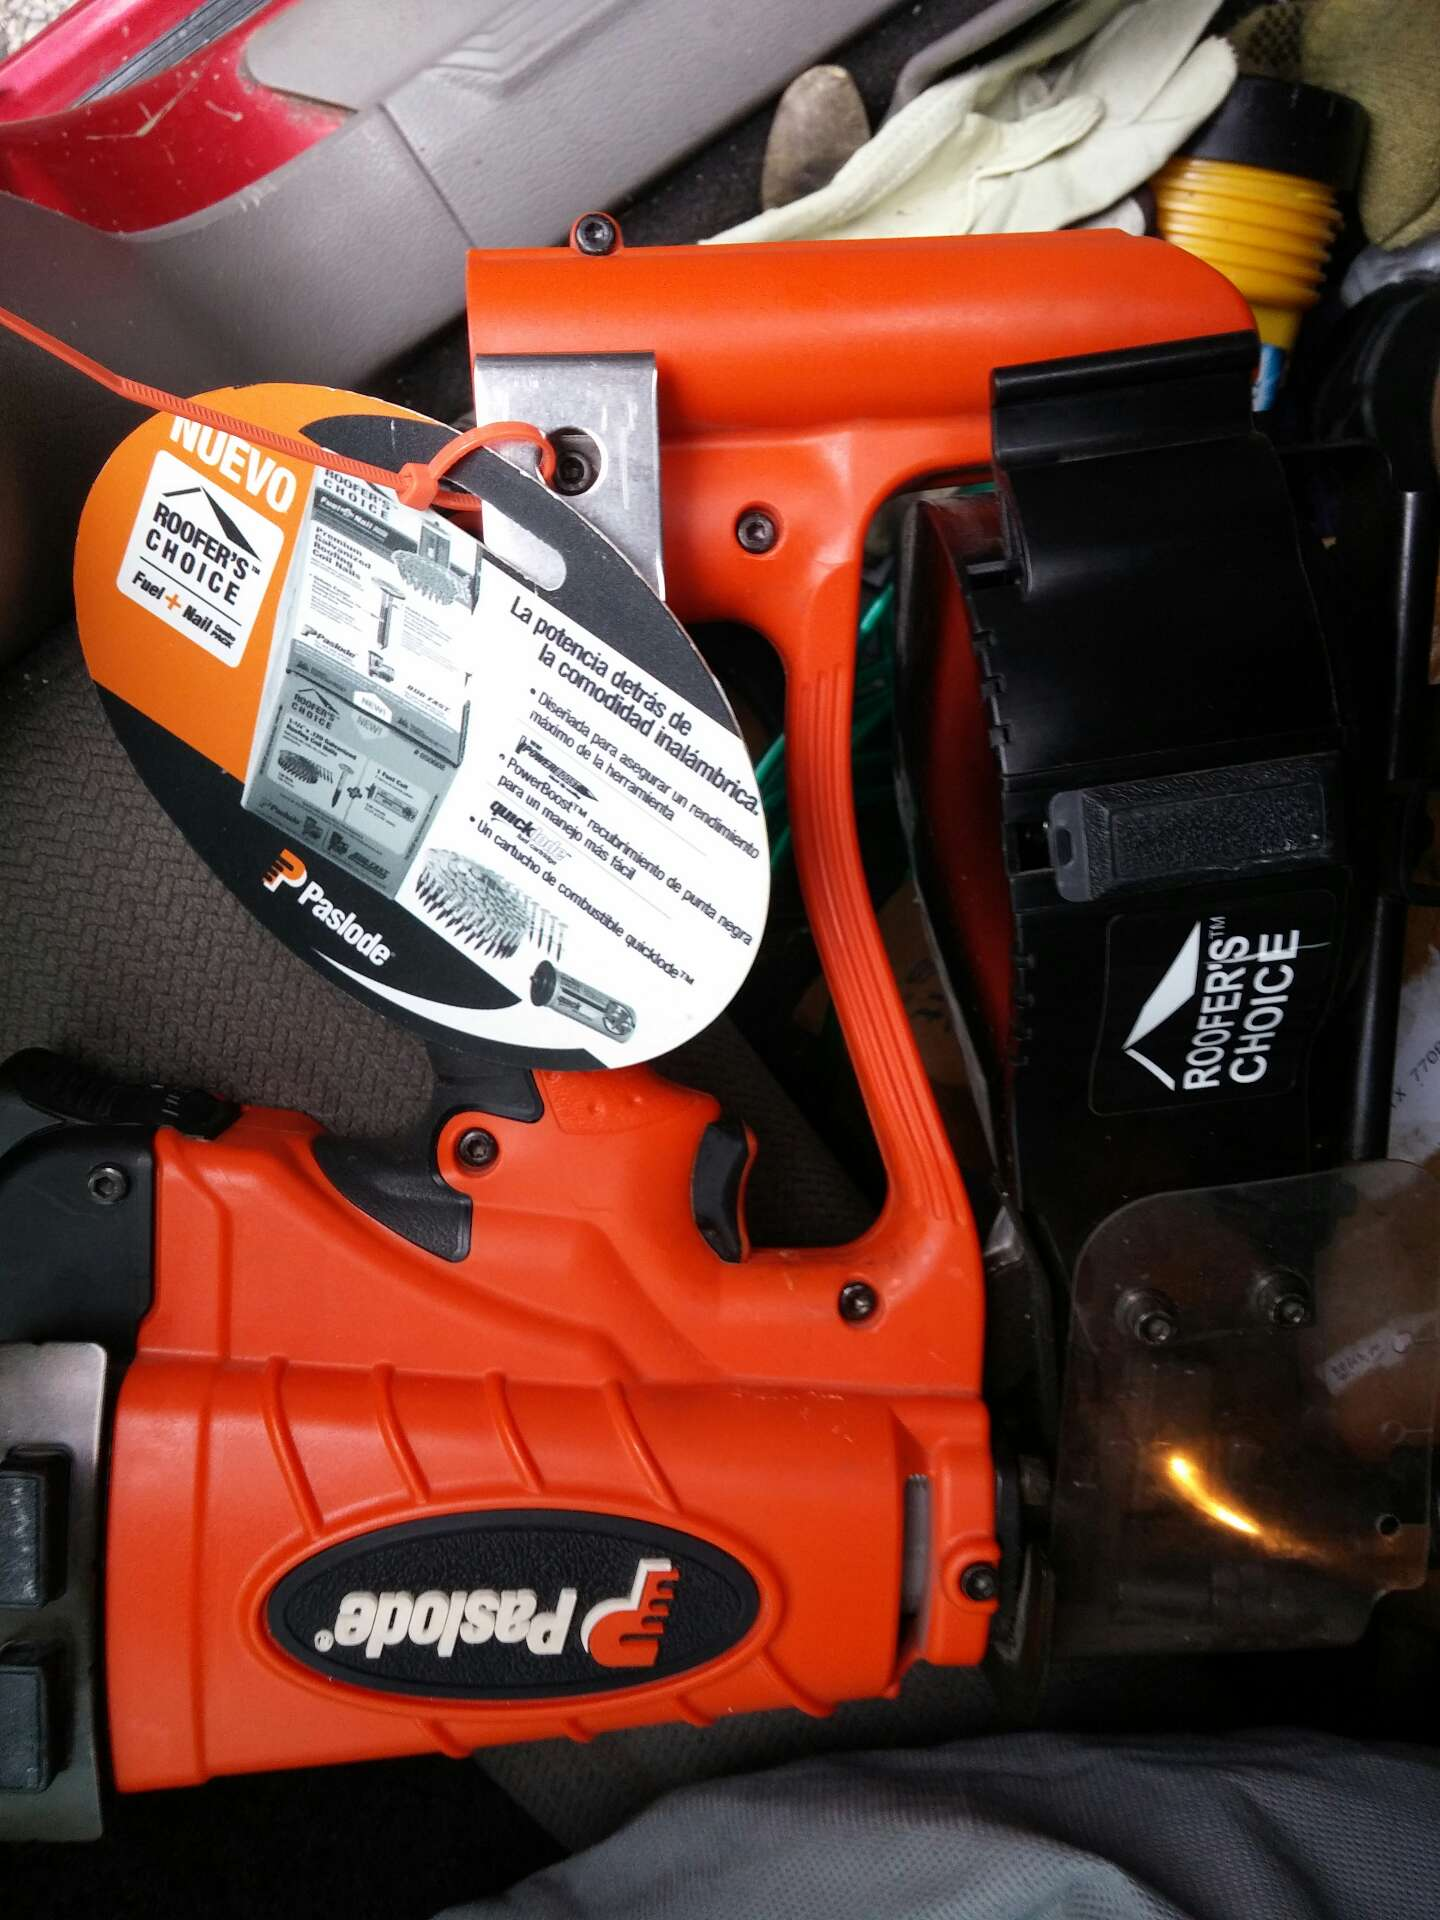 Brand NEW Upgraded Paslode Cordless Roofing Nailer Accepts Trim Fuel